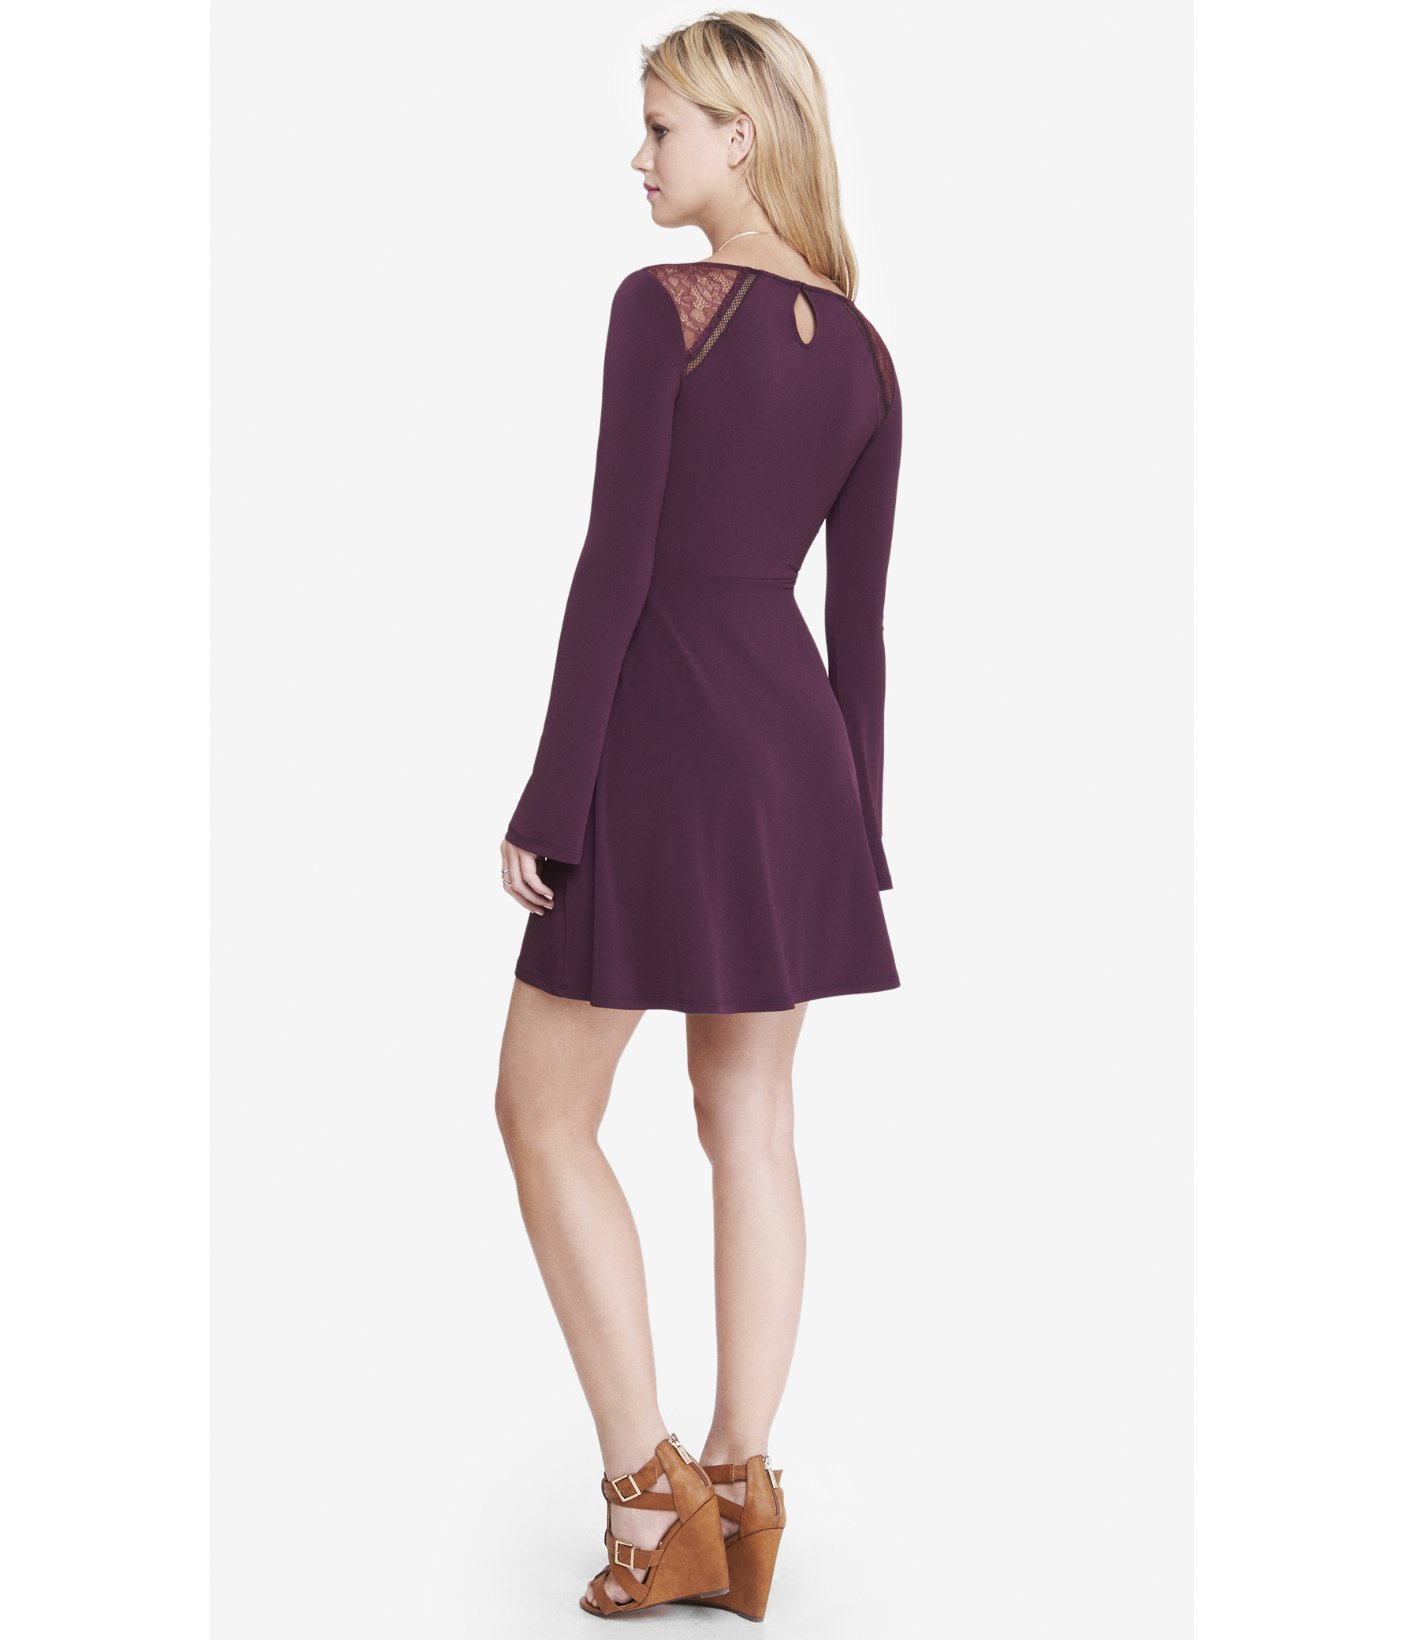 Lyst - Express Bell Sleeve Fit And Flare Dress in Purple